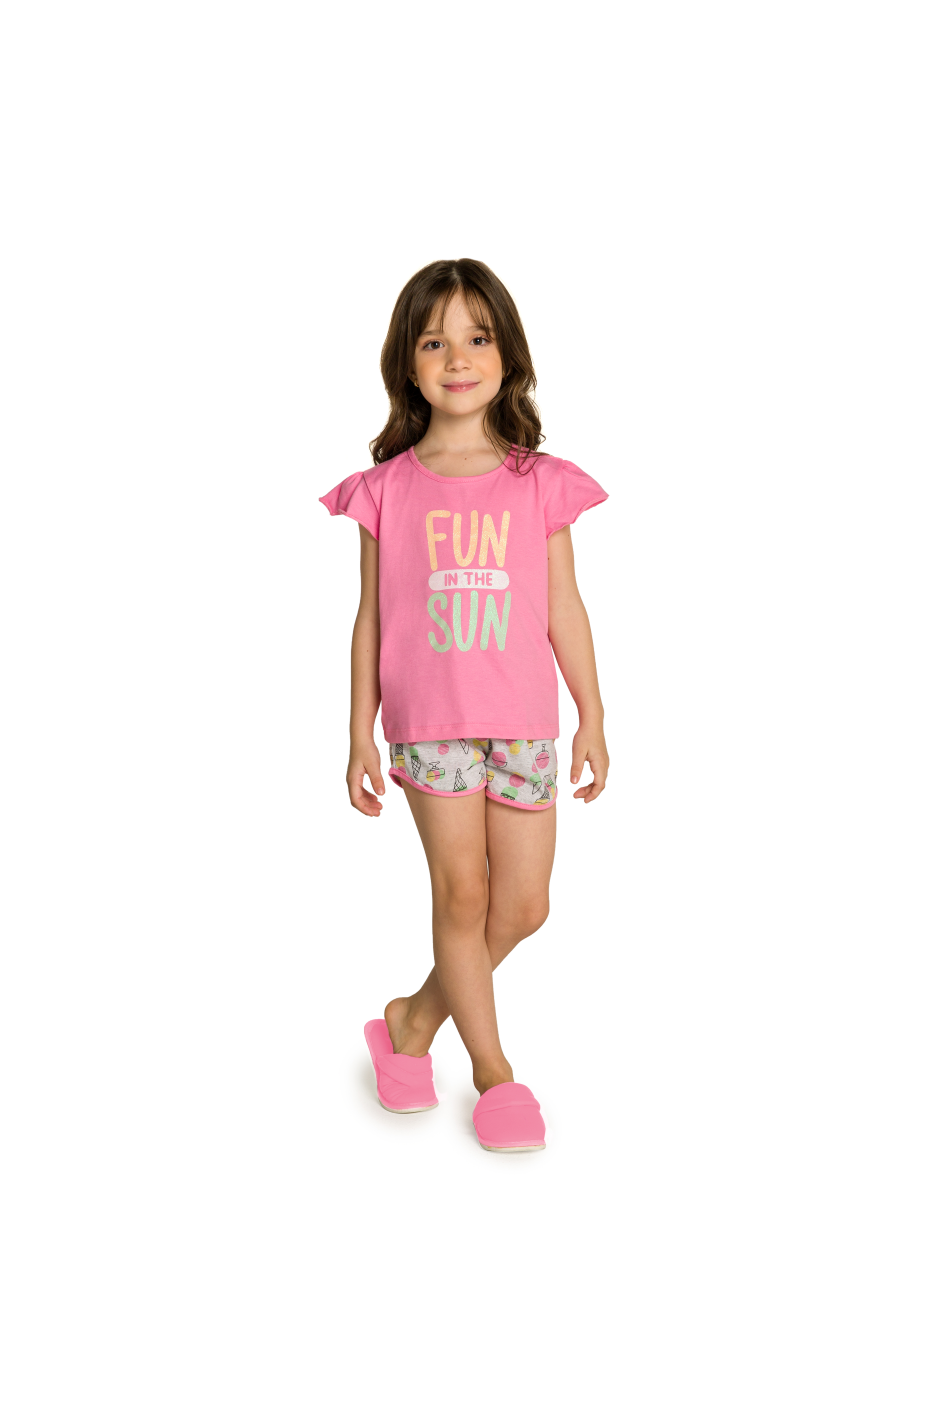 009/D - Pijama Infantil Feminino Fun In The Sun